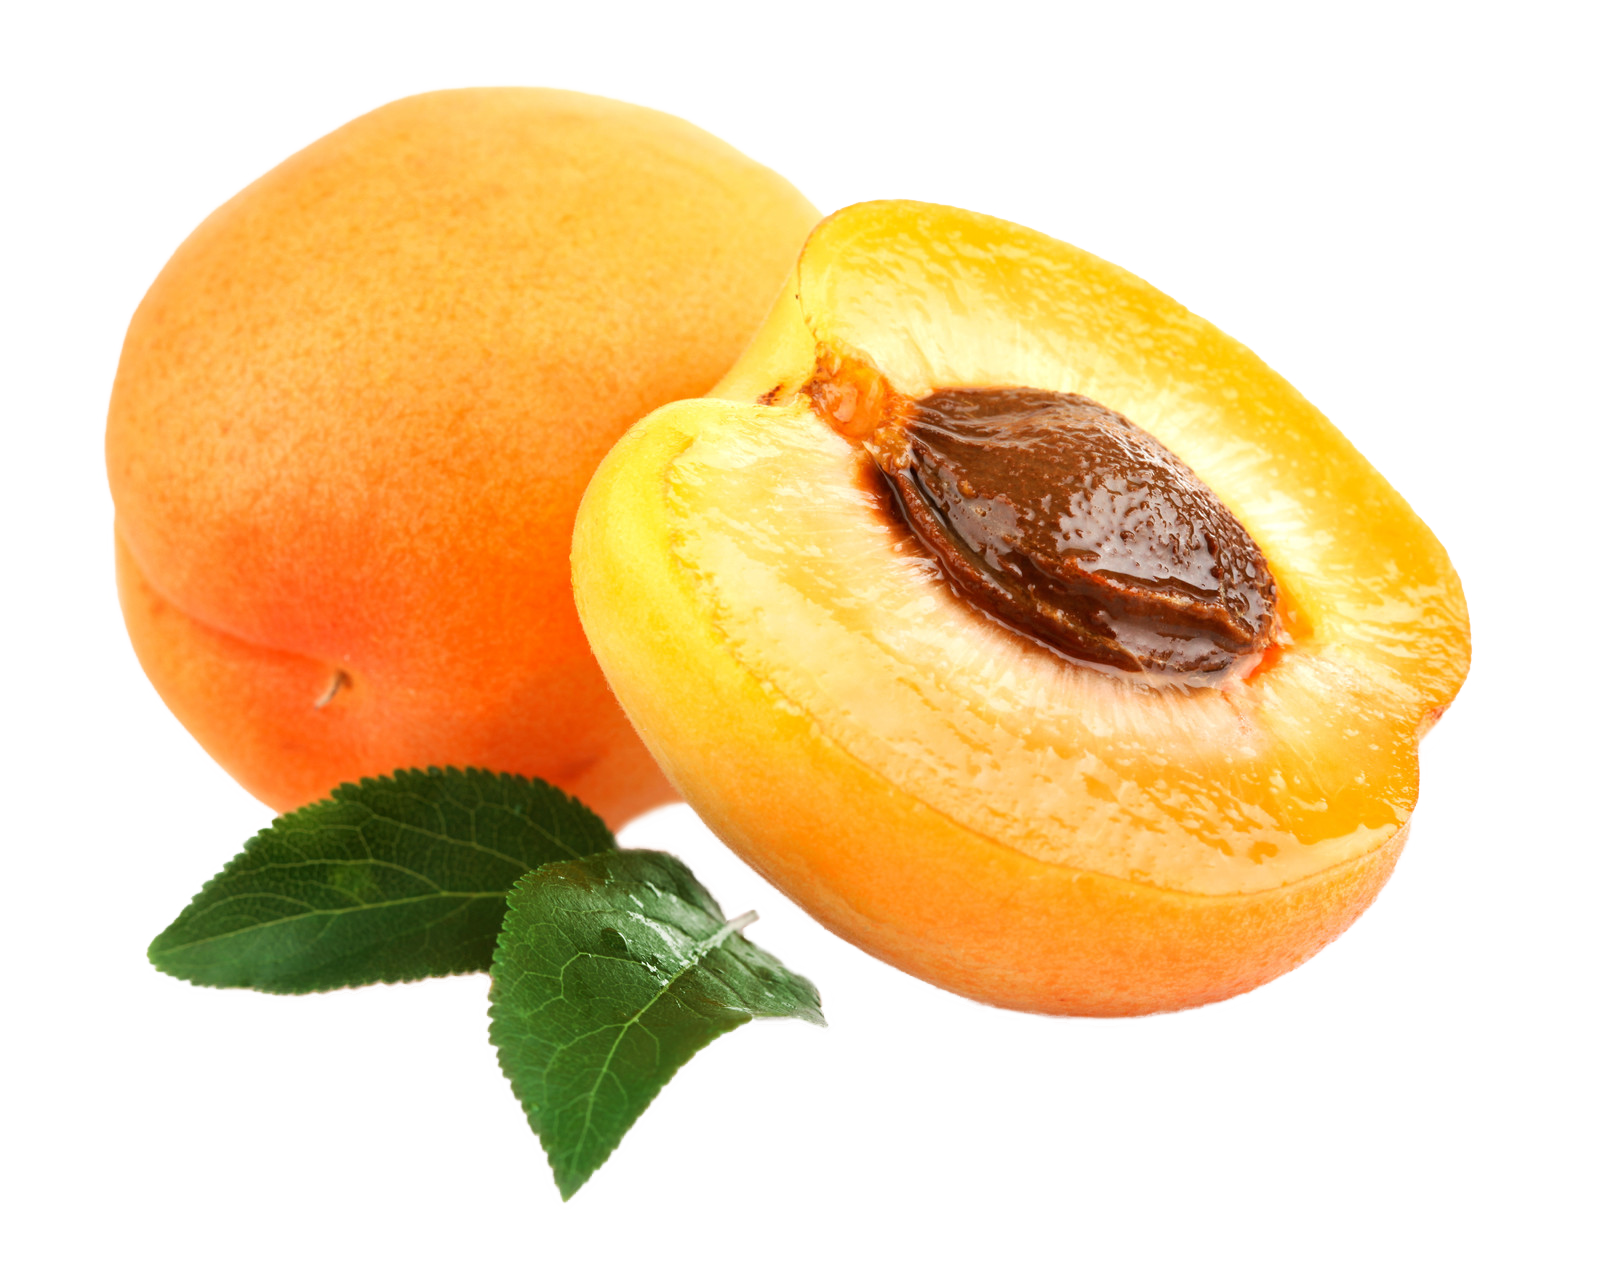 Apricot PNG - 17389